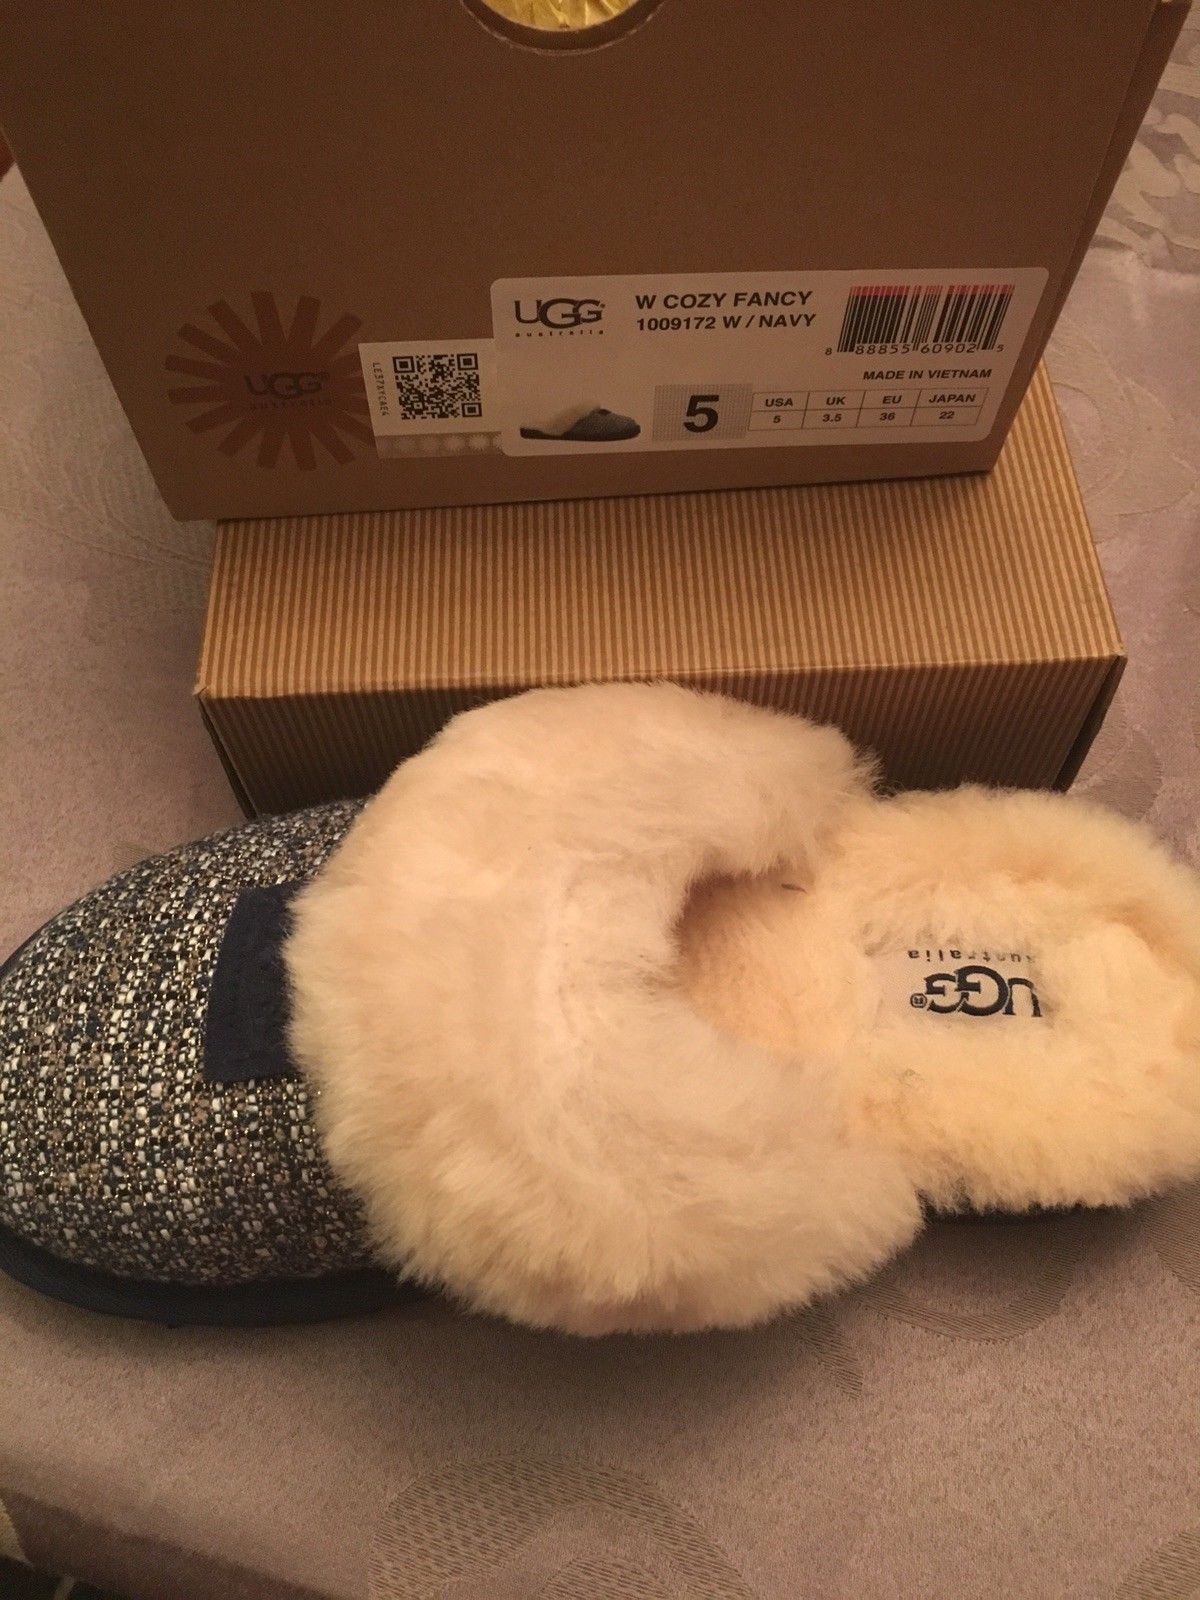 9e1fcd9e82e Ugg Australia Cozy Fancy Sheepskin Cuffed and similar items